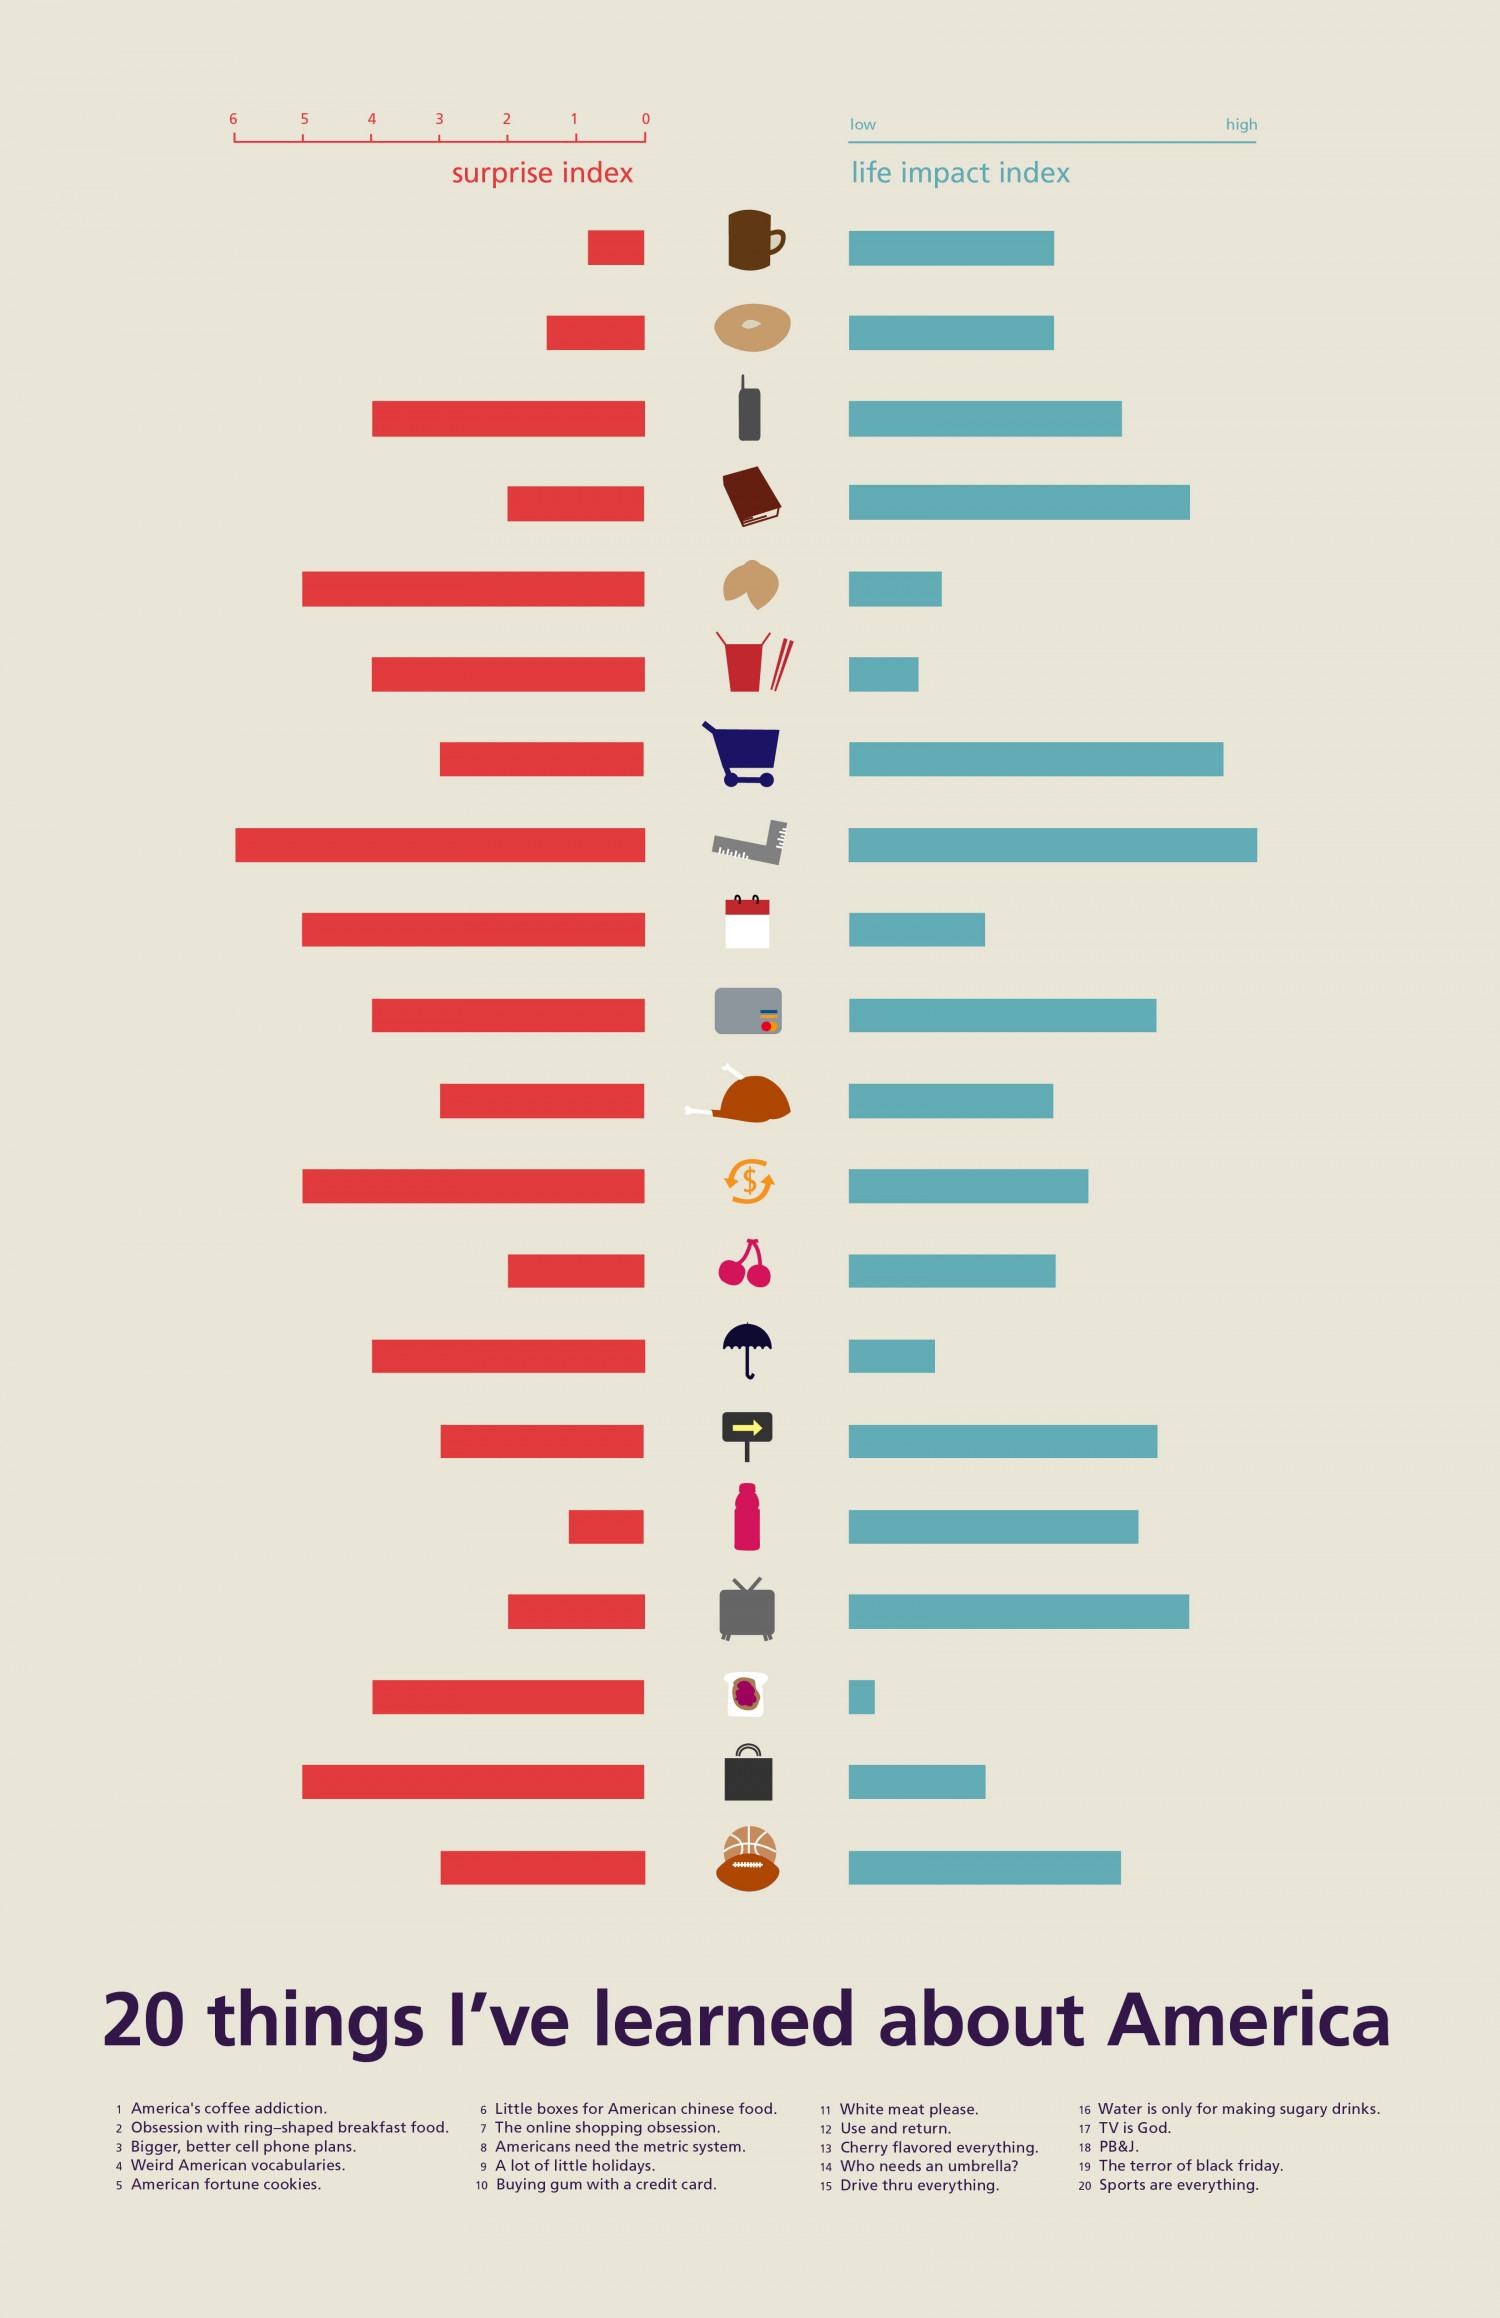 20 things I've learned about America Infographic